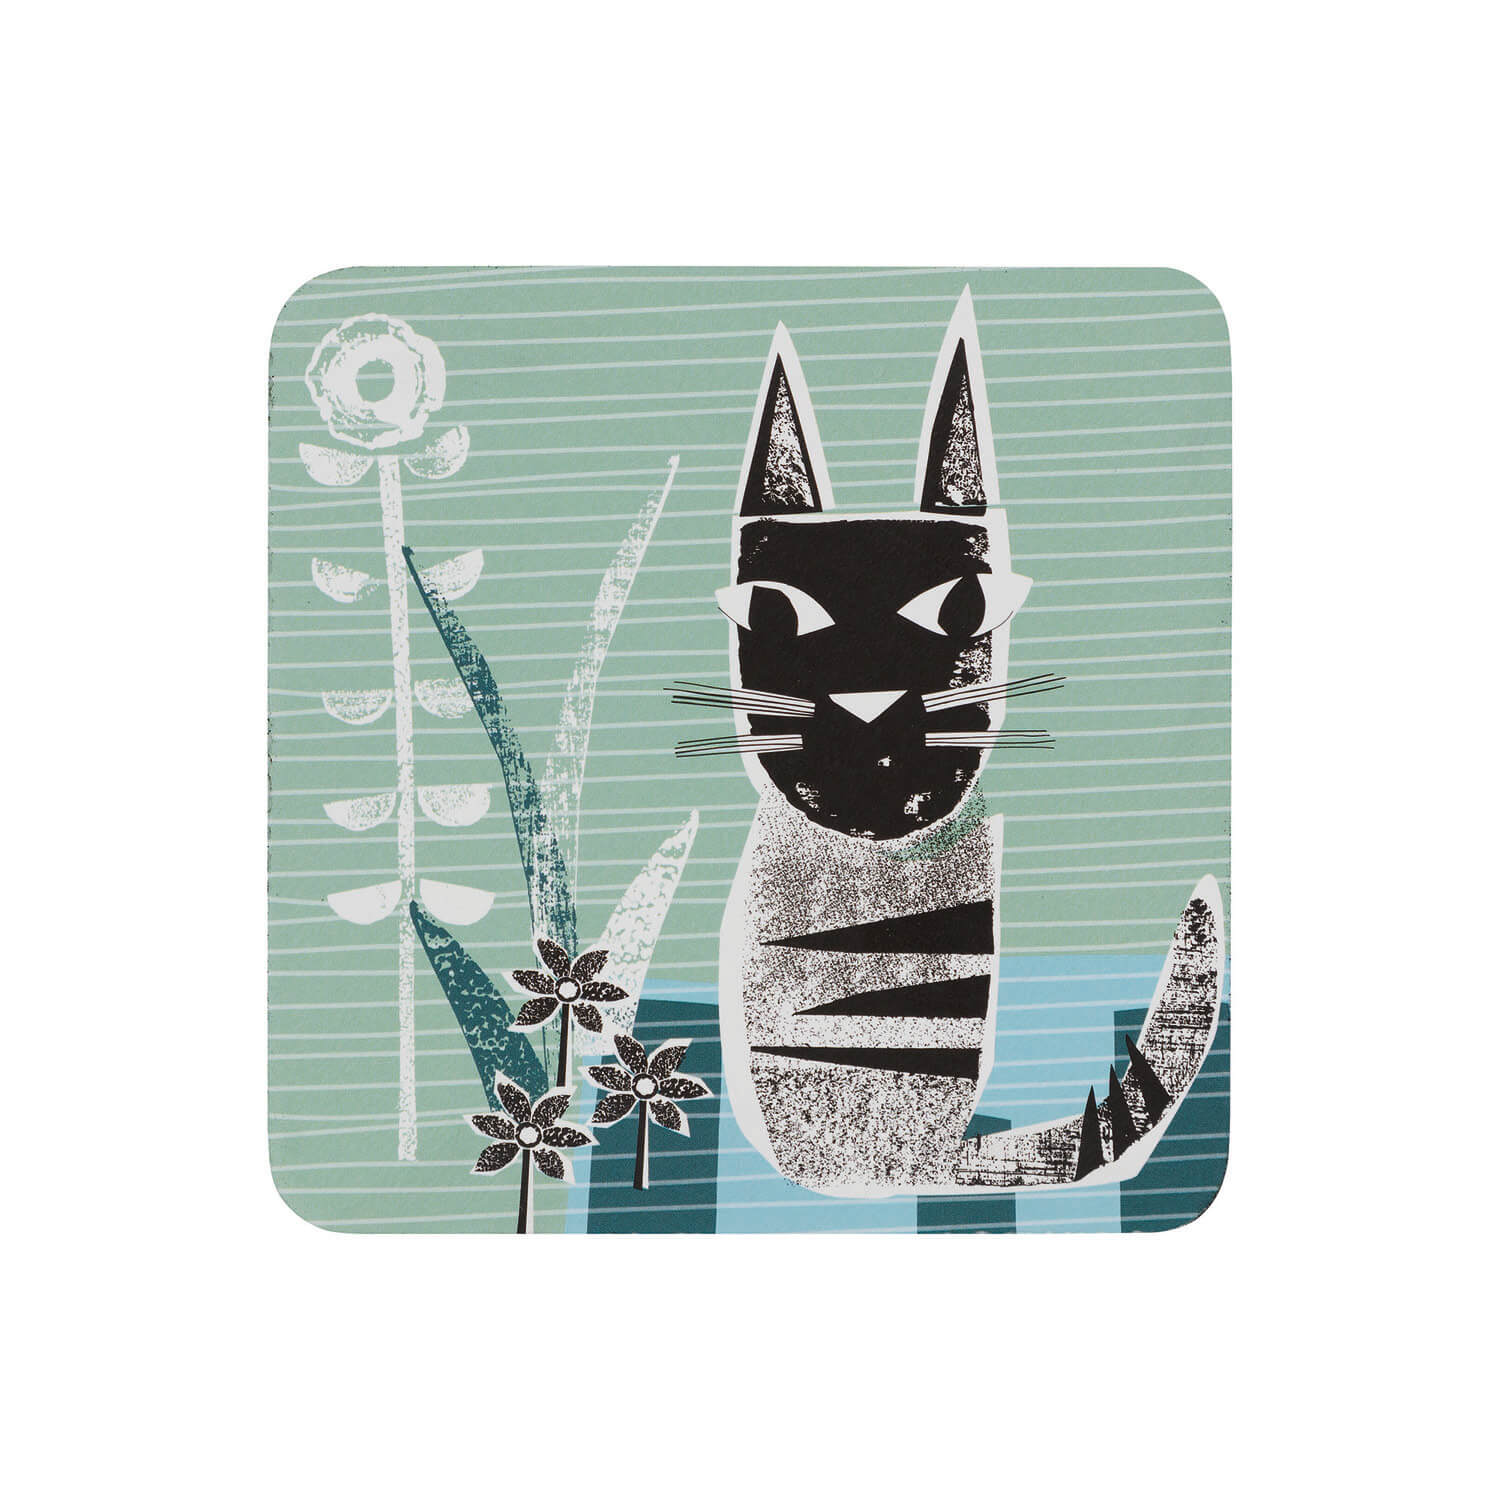 Image of Denby Coasters, Denby Cat, Set of 6